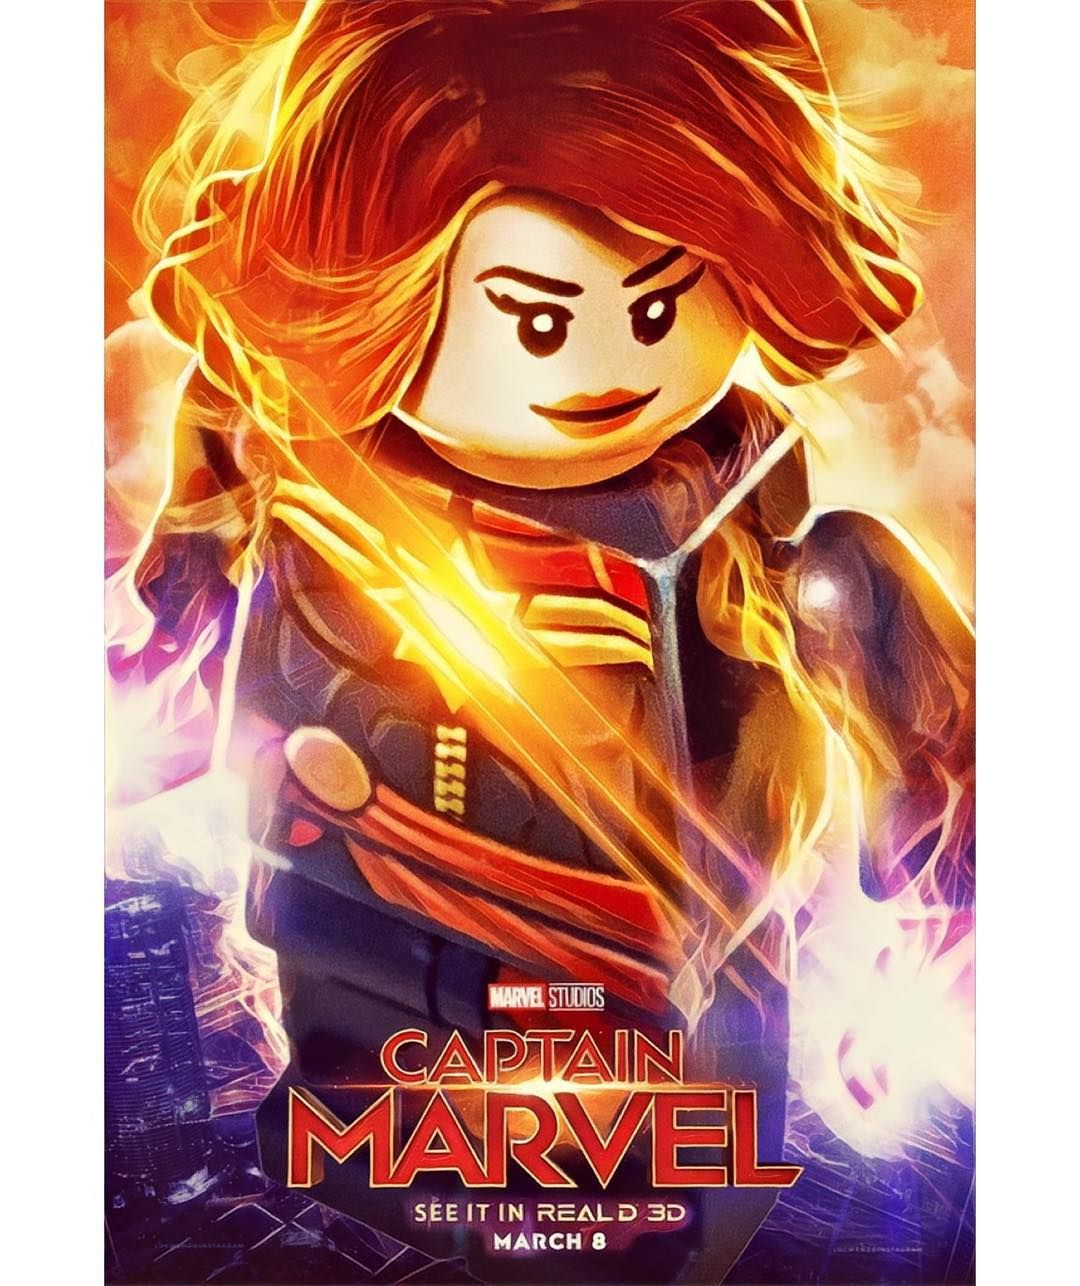 Captain Marvel As A Lego Minifigure Poster Lego Poster Marvel Posters Captain Marvel